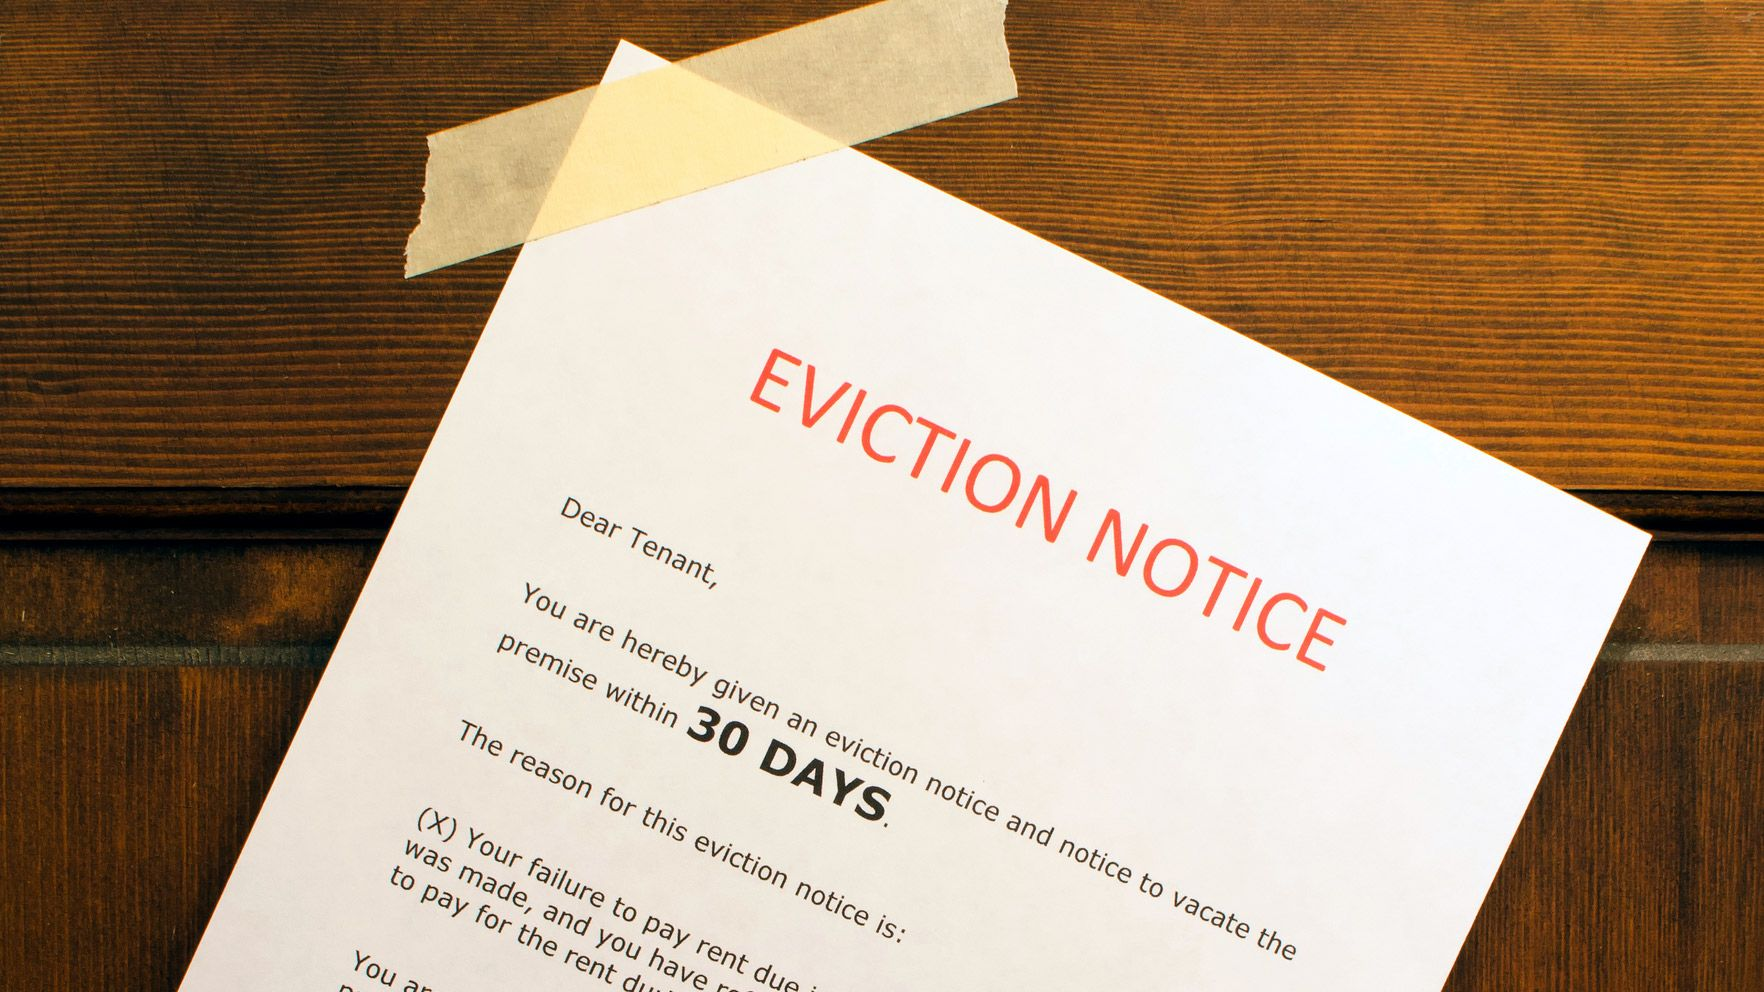 Eviction Notice Posted